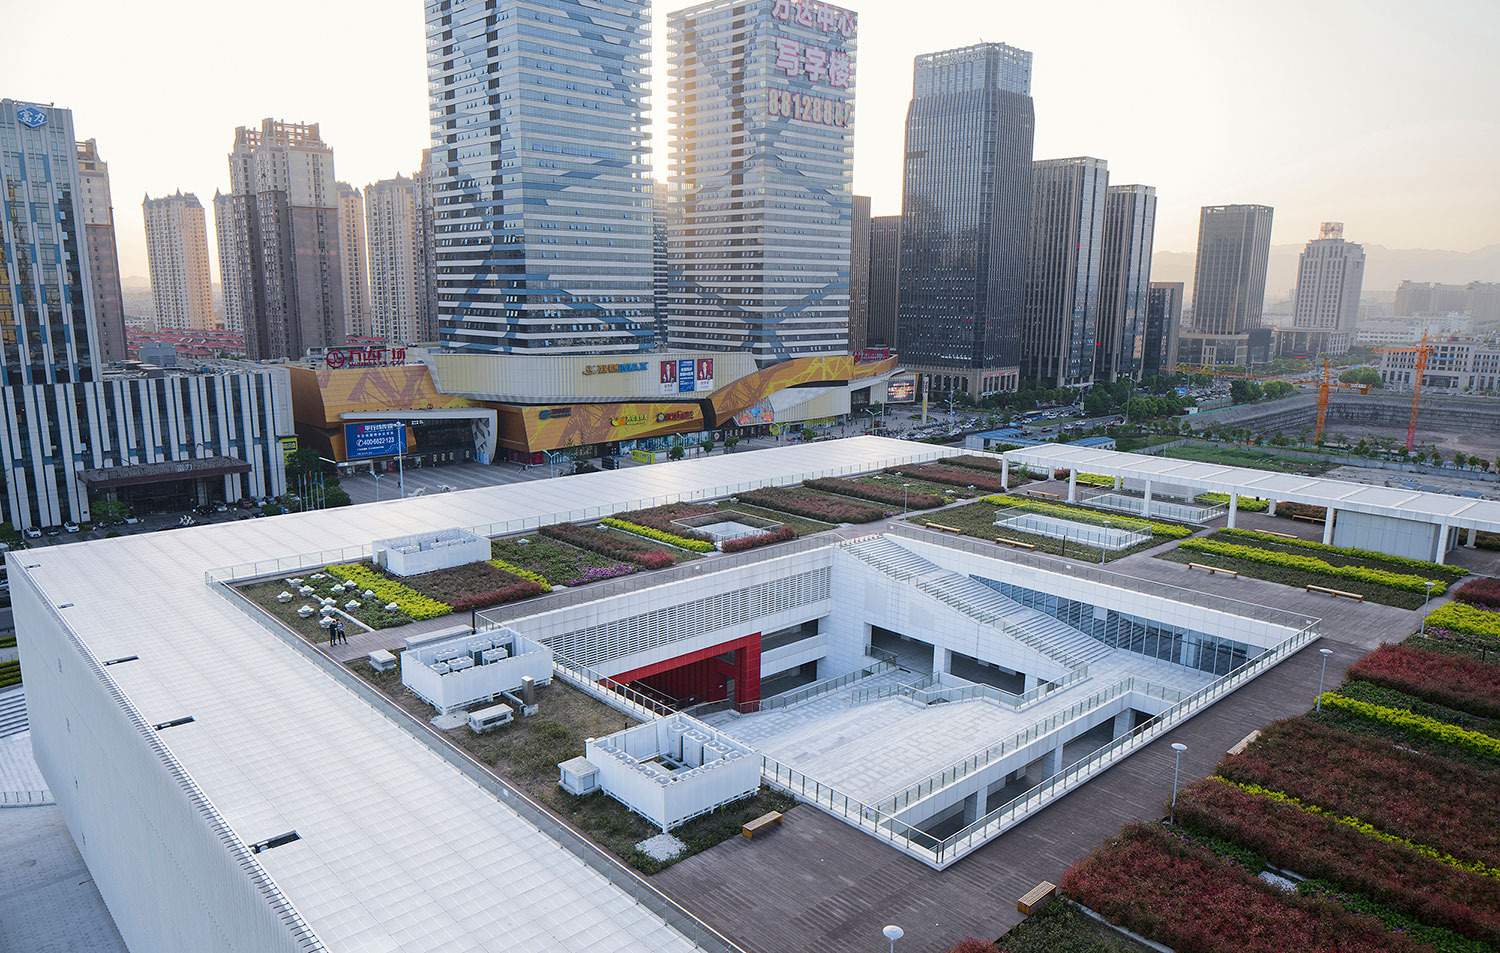 Part of the rooftop garden © Zhao Qiang